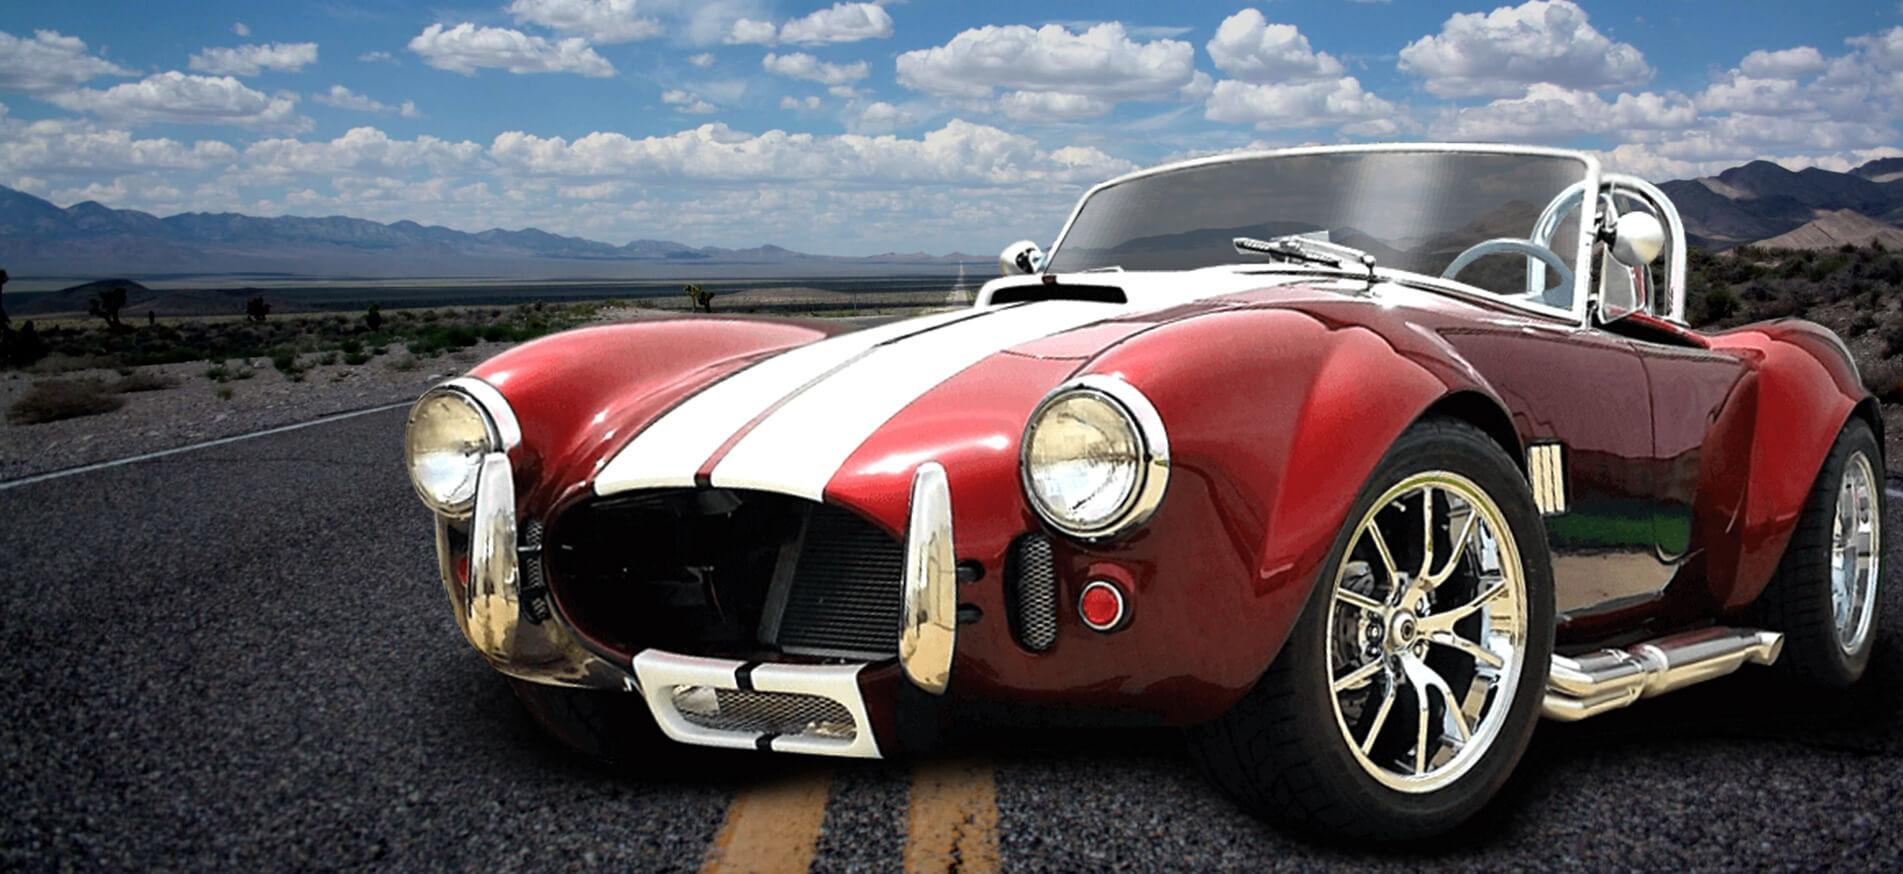 High-performance replica custom Cobra Roadster